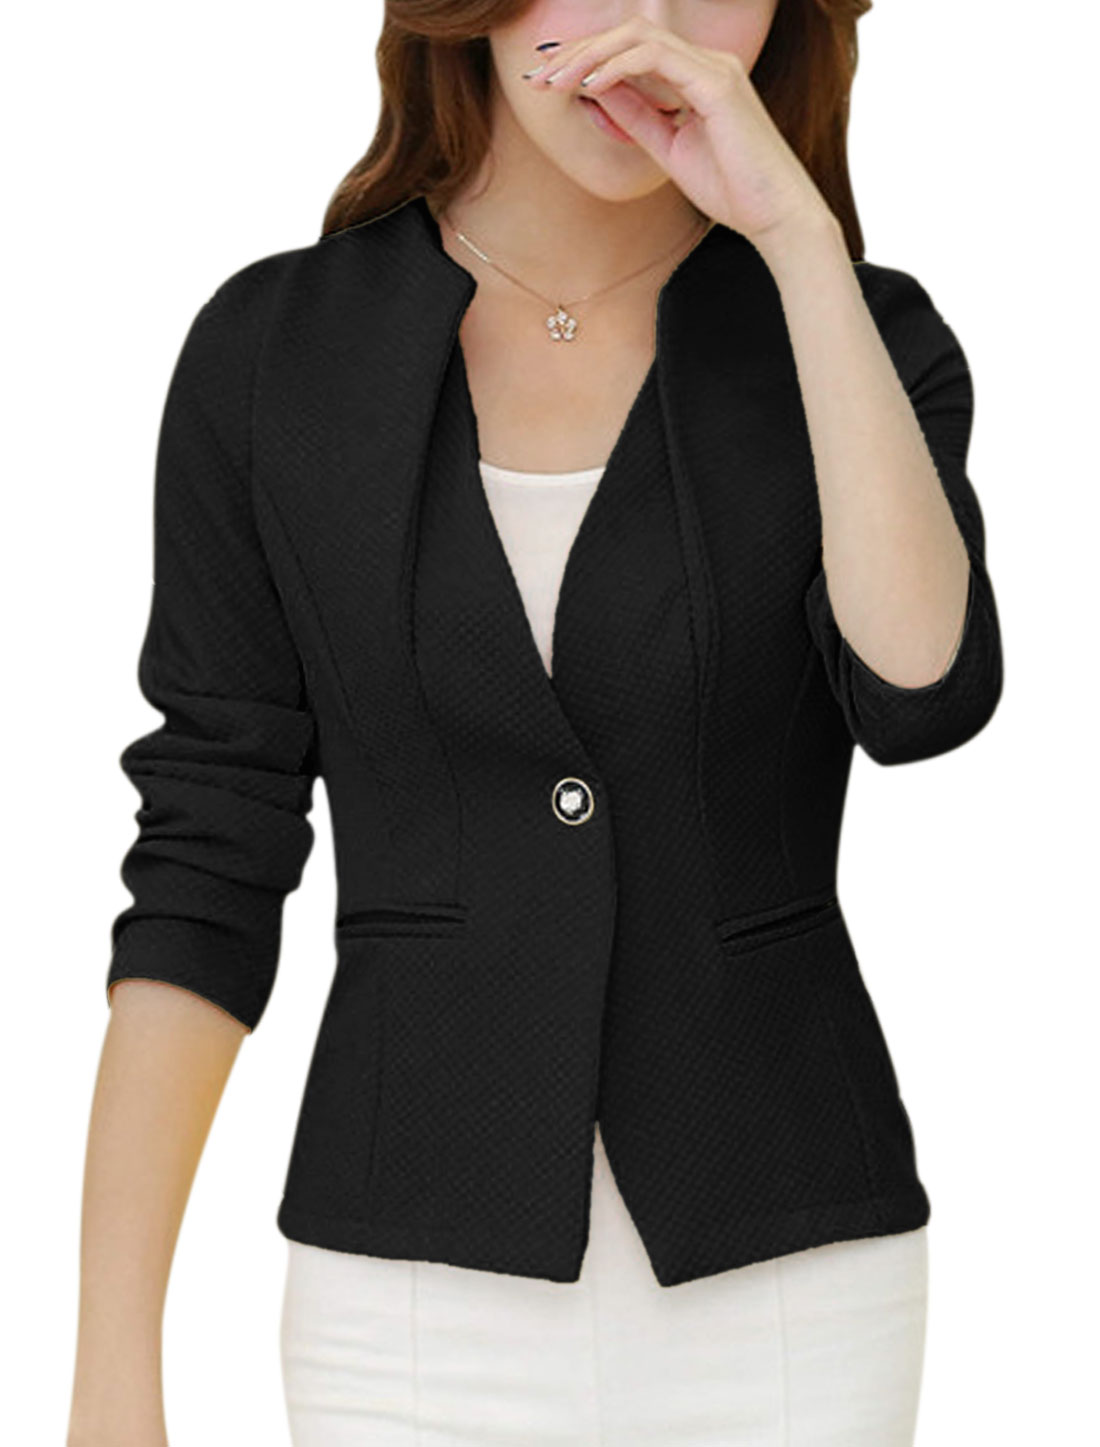 Women Long Sleeves One Button Front Slim Fit Blazer Jacket Black S